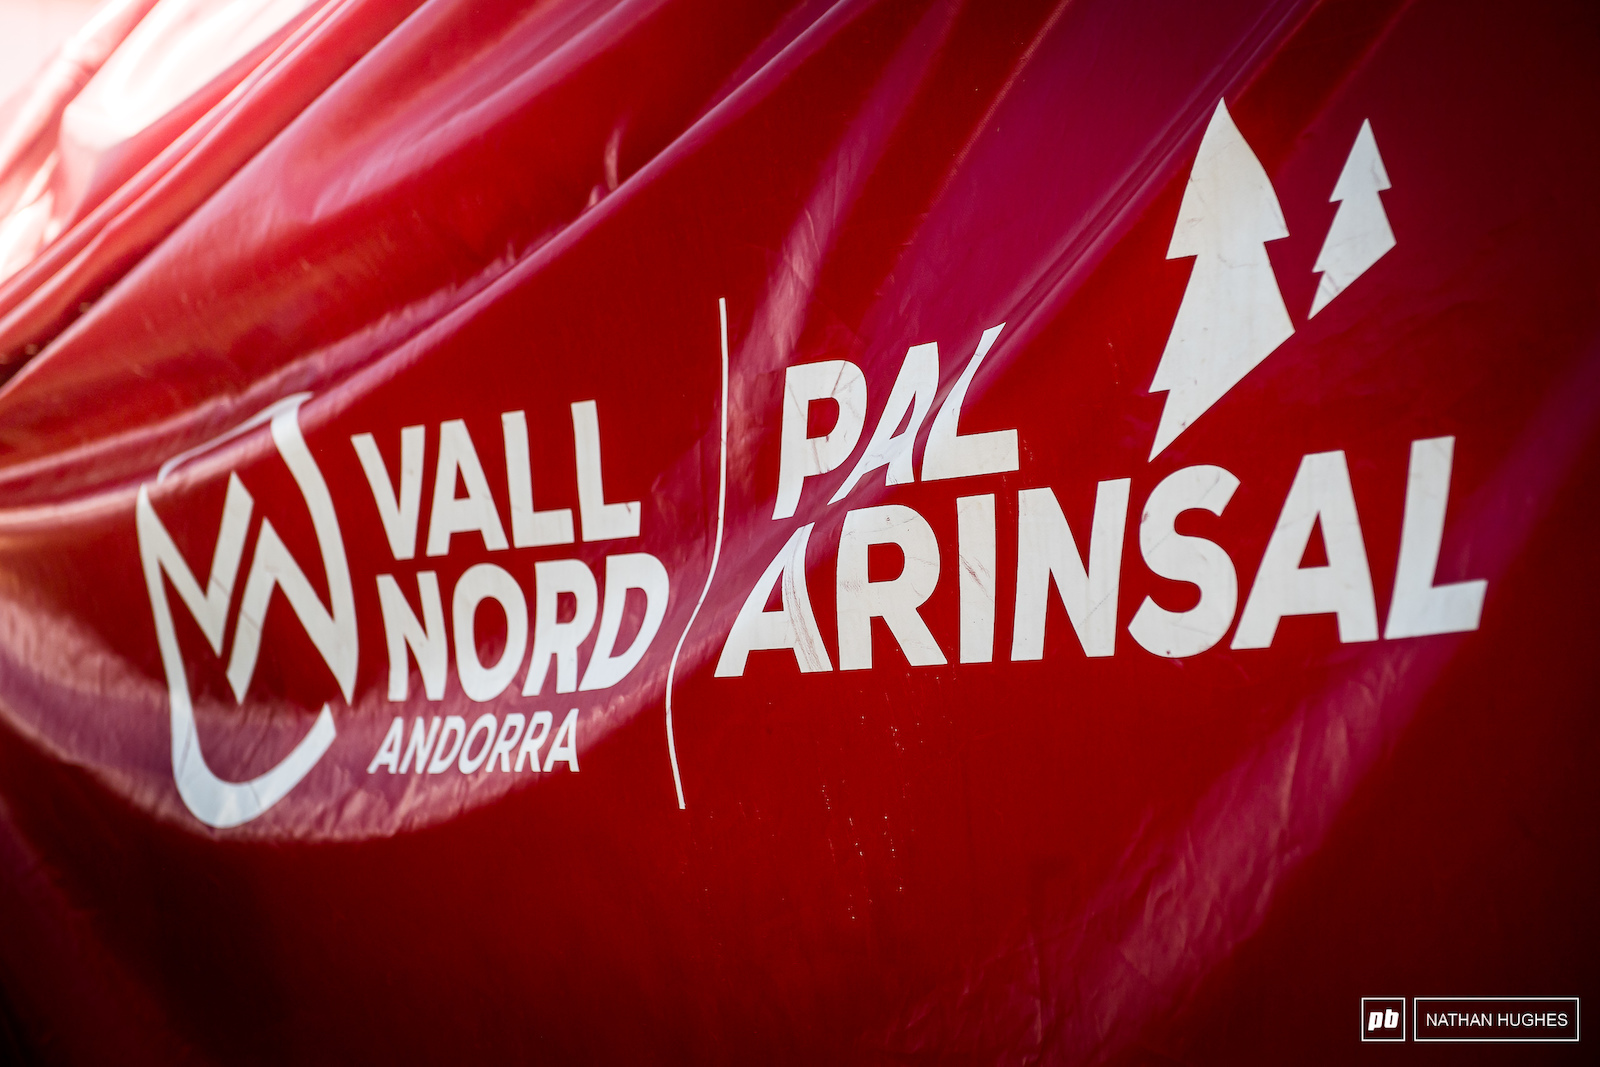 Vallnord always delivers a memorable round and hasn t missed a beat since 2014.